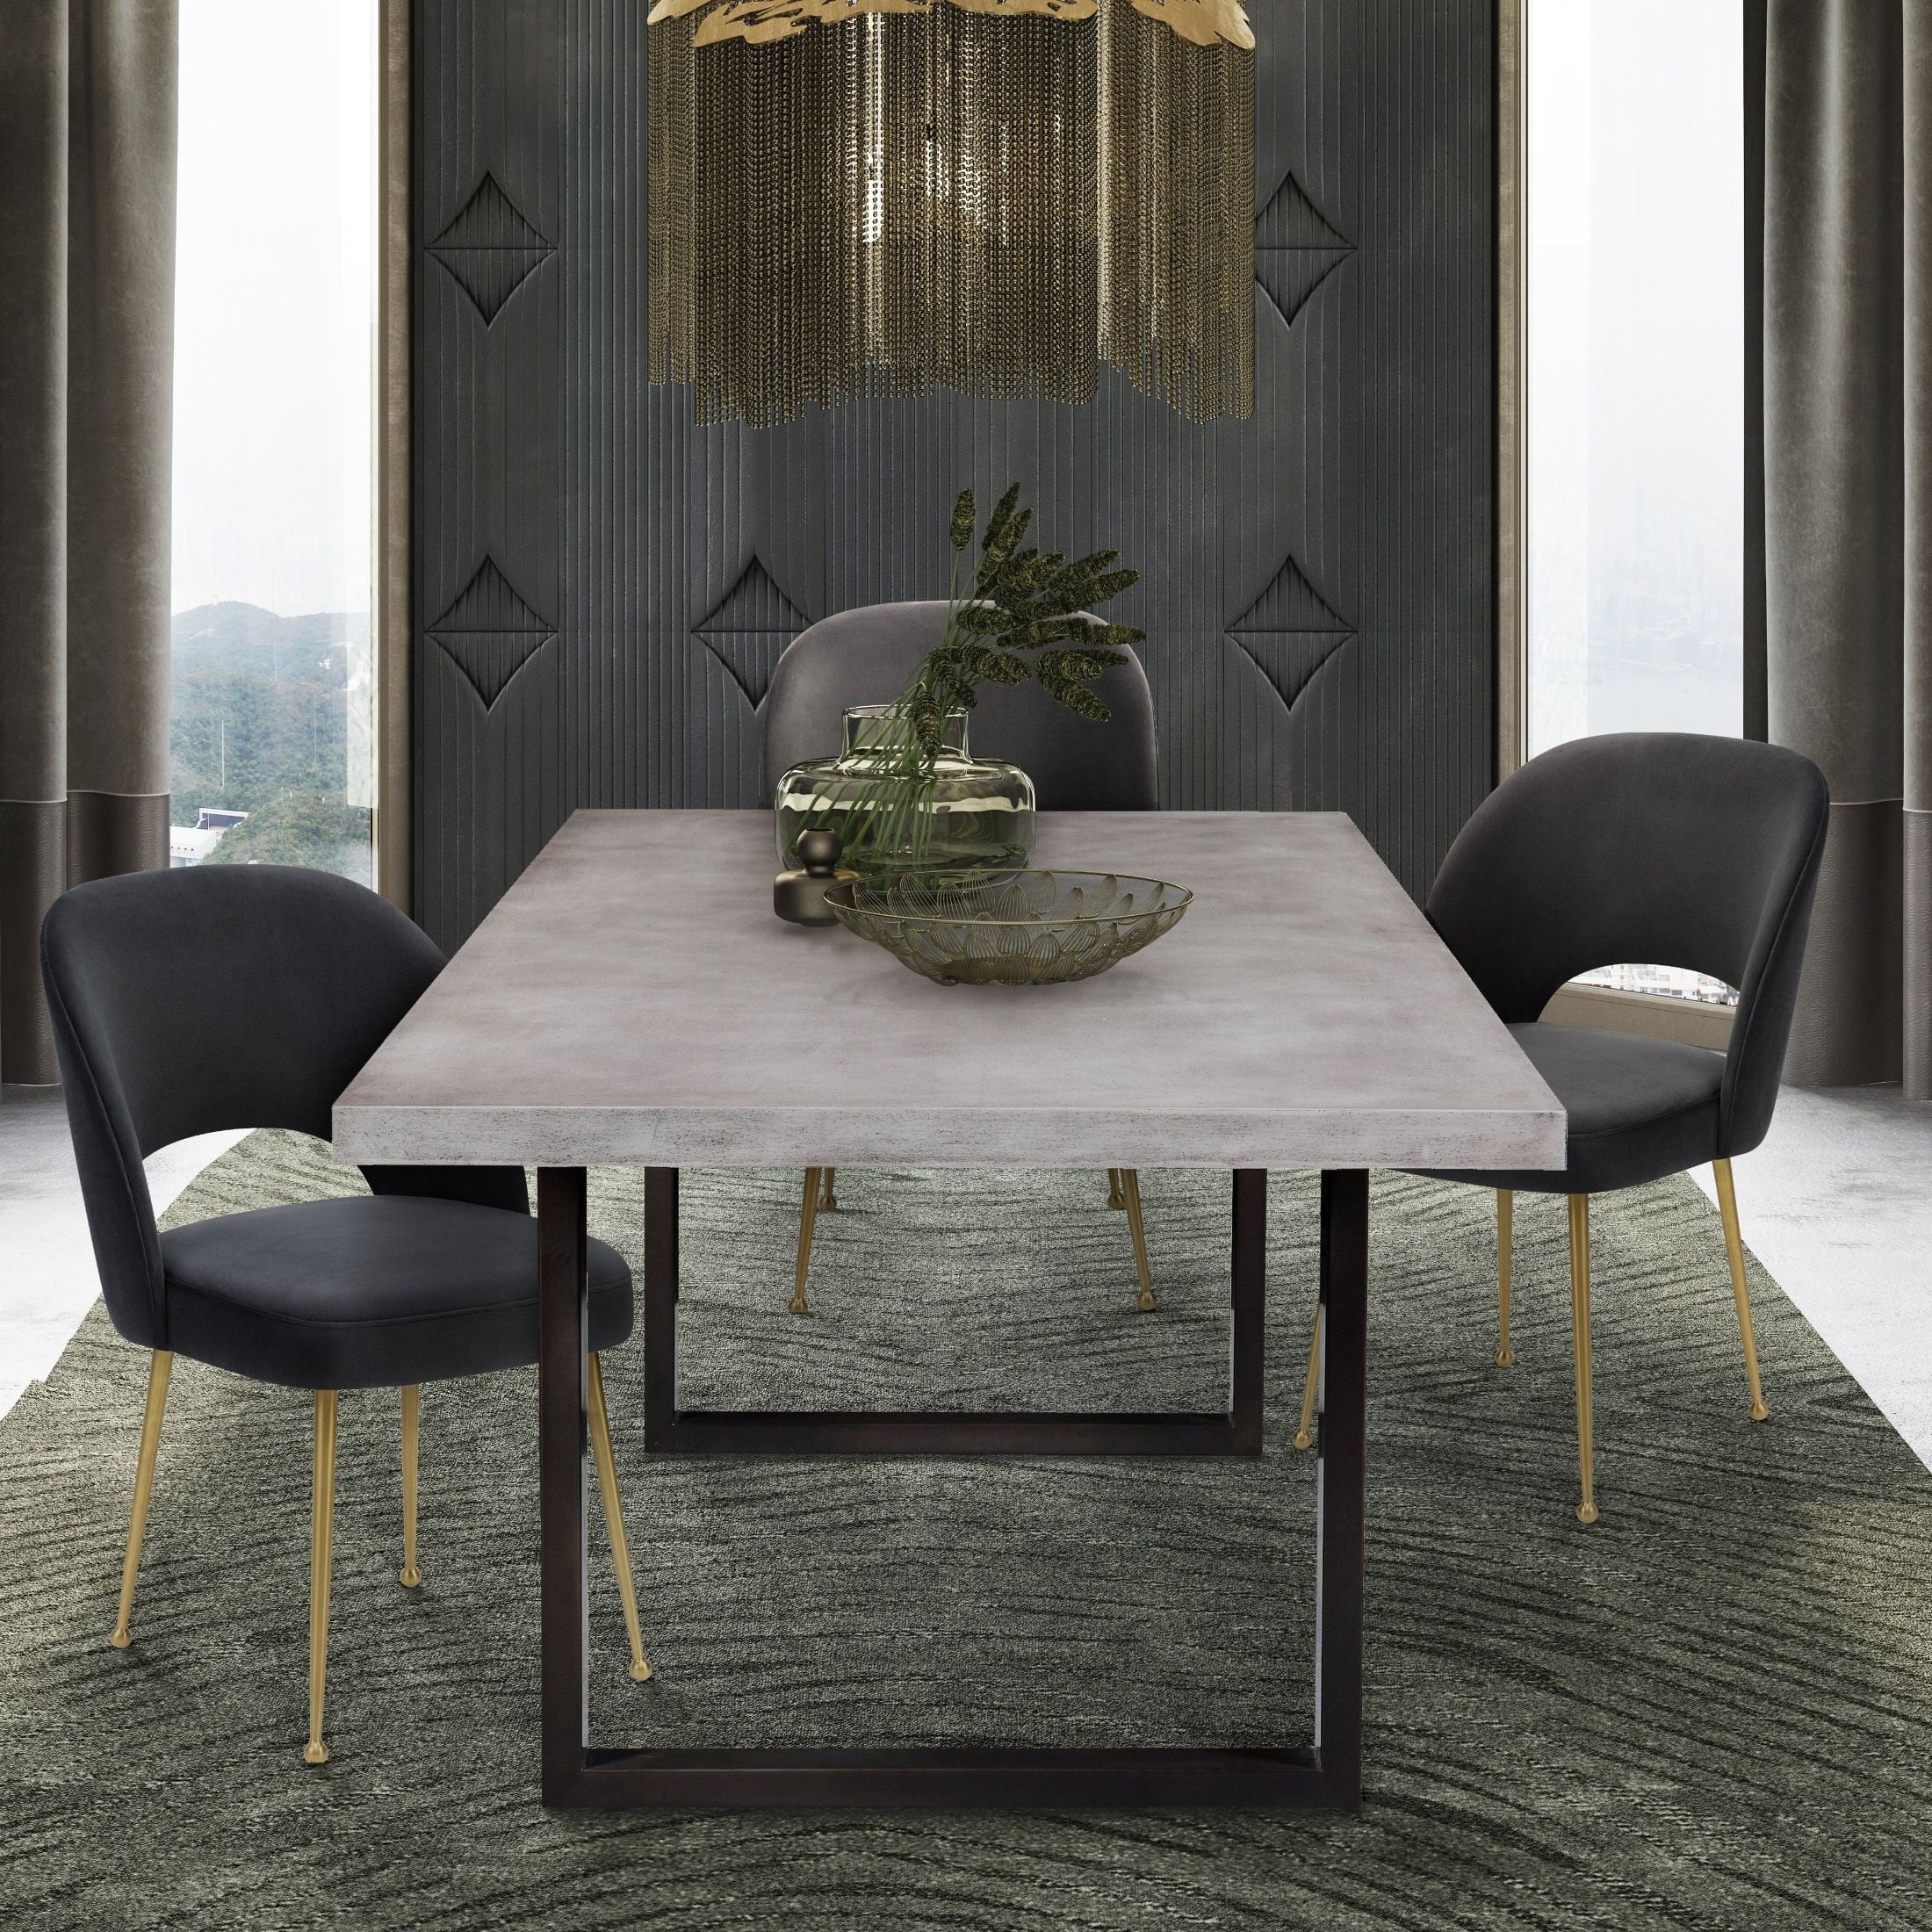 Edna Concrete Rectangular Dining Room Set With Swell Chair From Tov With Regard To Famous Swell Round Coffee Tables (Gallery 17 of 20)